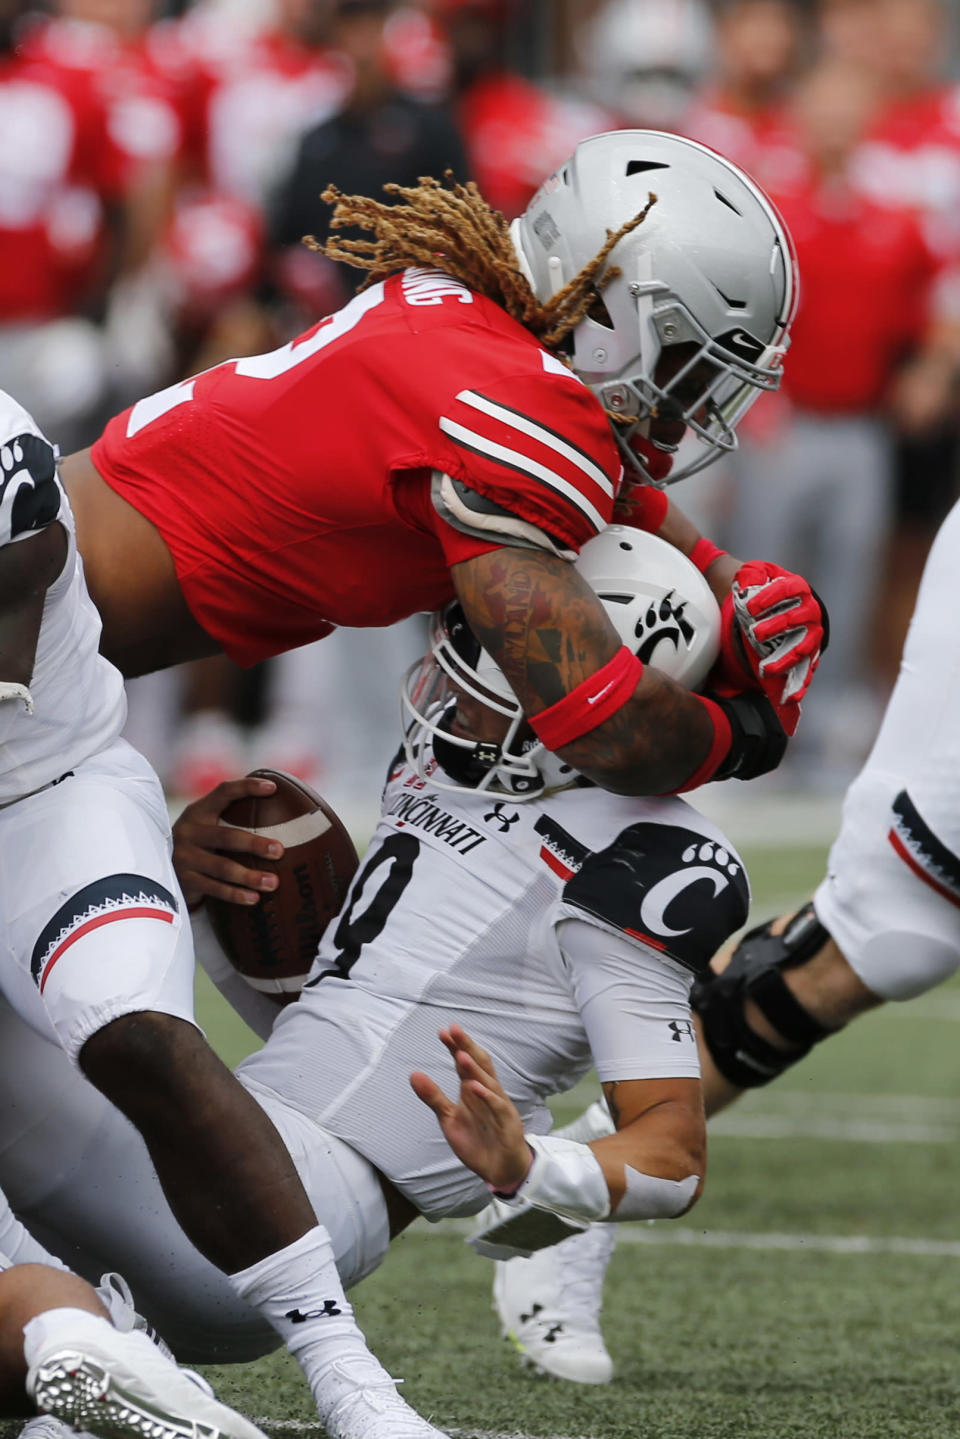 """FILE - In this Sept. 7, 2019, file photo, Ohio State defensive end Chase Young, top, sacks Cincinnati quarterback Desmond Ridder during the first half of an NCAA college football game, in Columbus, Ohio. Ohio State says defensive end Chase Young won't play Saturday against Maryland because of a possible NCAA """"issue"""" in 2018. The surprising news was announced by the school with team's status report and depth chart for the coming game. The statement says Young is being held out because of a """"possible NCAA issue from last year"""" the athletic department is """"looking into."""" (AP Photo/Jay LaPrete, File)"""